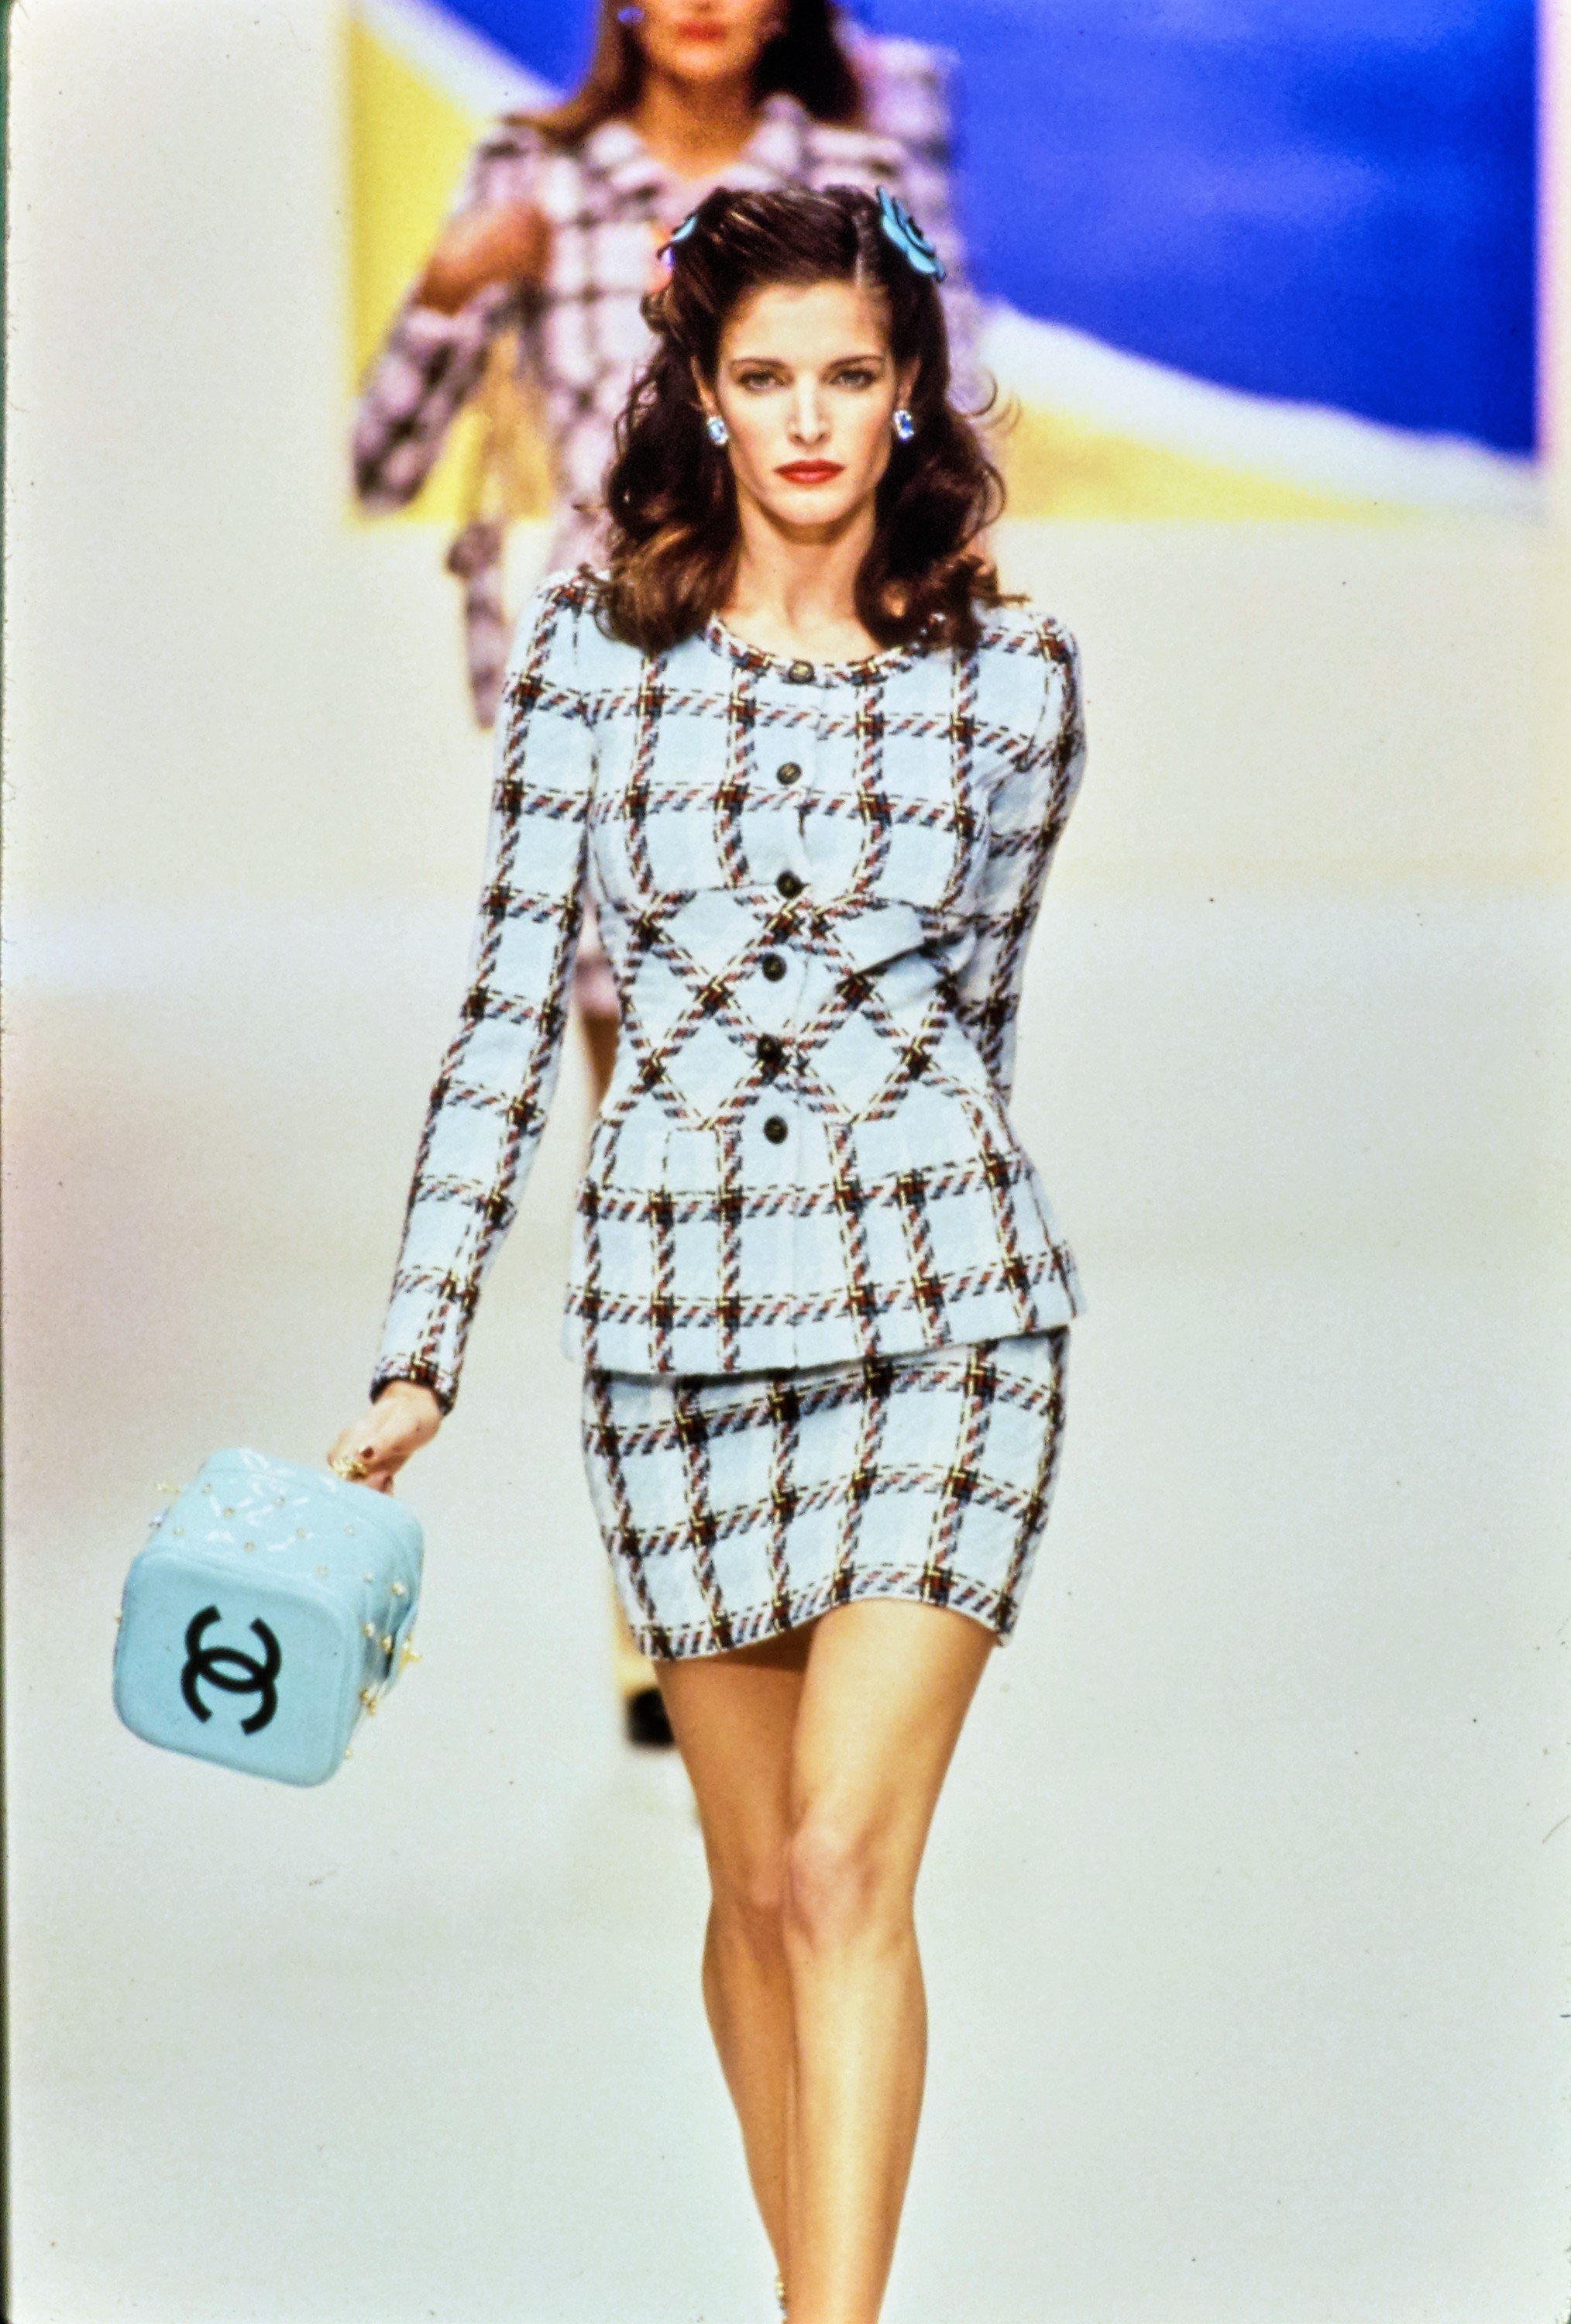 chanel in the 90's - chanel-spring-1995-ready-to-wear-CN10053222-stephanie-seymour